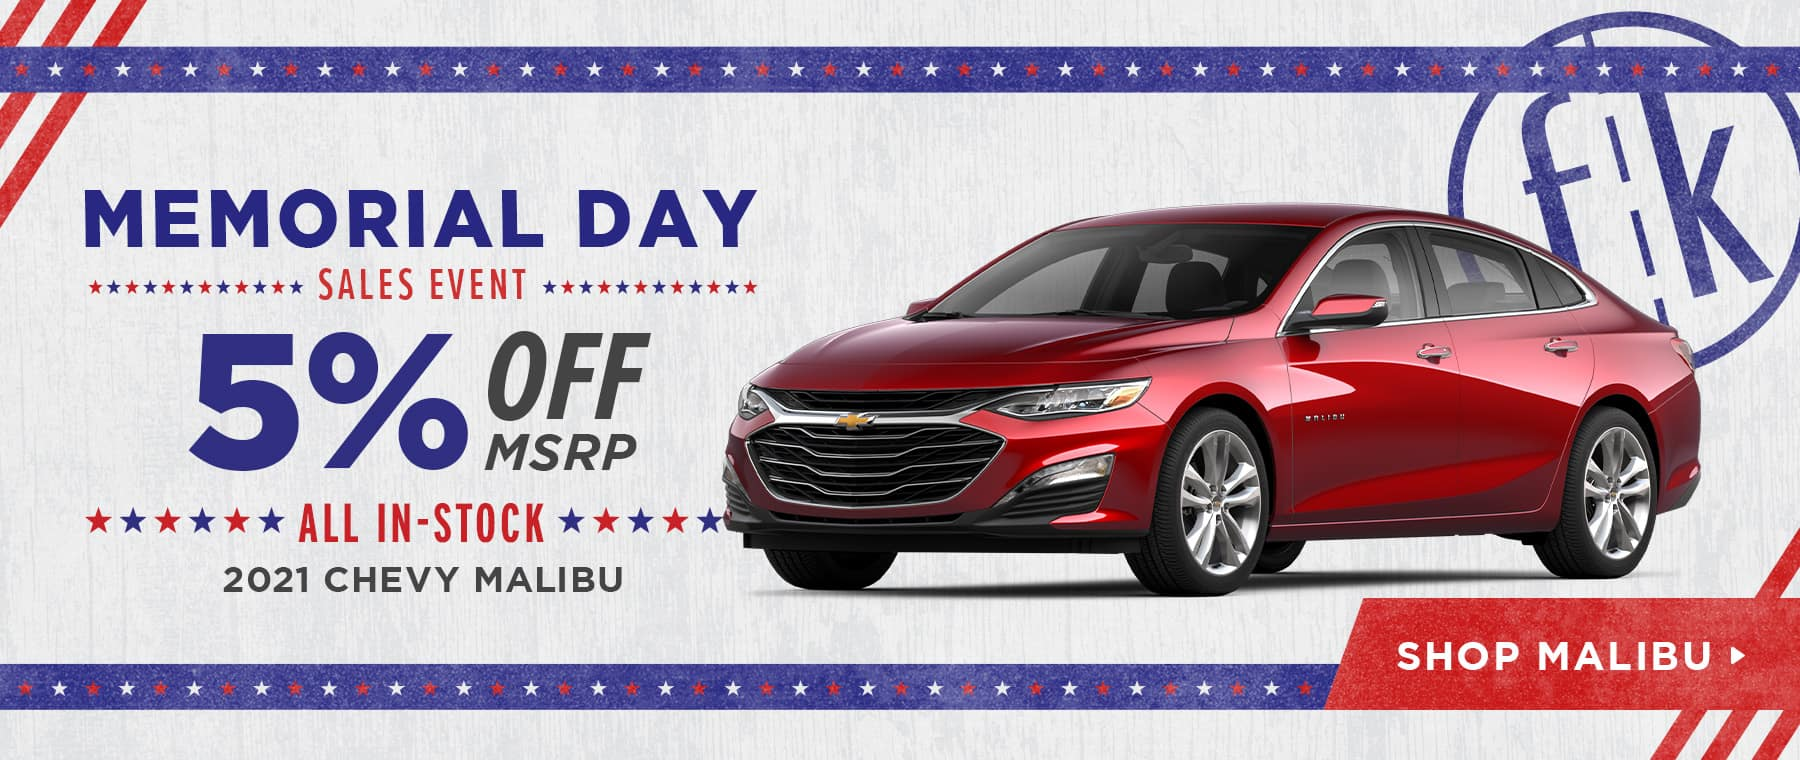 5% Off All In-Stock 2021 Chevy Malibu